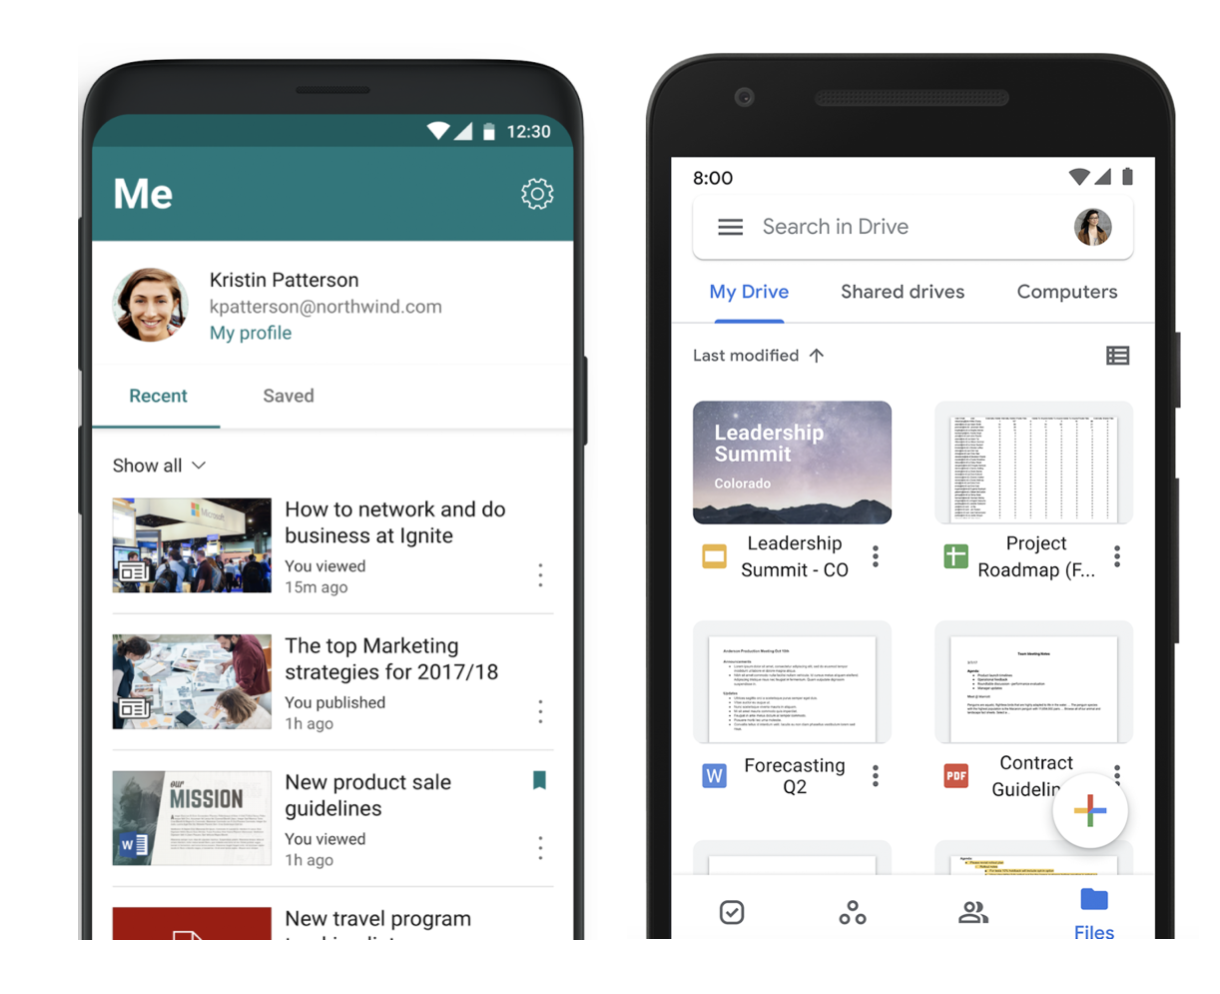 Mobile Content Management Solutions: Microsoft Sharepoint and Google Drive are shown here